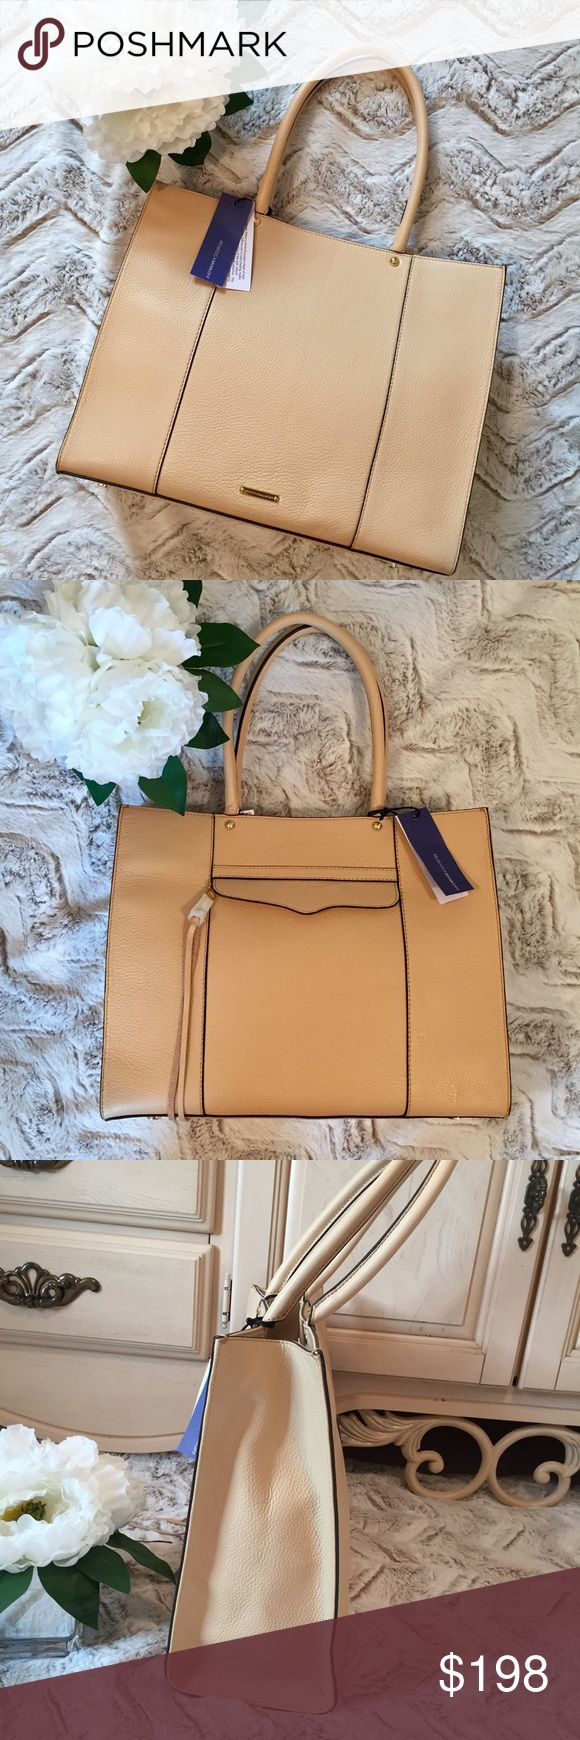 """🆕REBECCA MINKOFF PURSE TOTE BAG MEDIUM BISCUIT🆕 NEW WITH TAGS REBECCA MINKOFF medium tote in a neutral color called """" biscuit"""".  Please see pictures for measurements.  Suggested Retail is $265.00.  NCMCOLLECTIONS 💐👜 Rebecca Minkoff Bags Totes"""